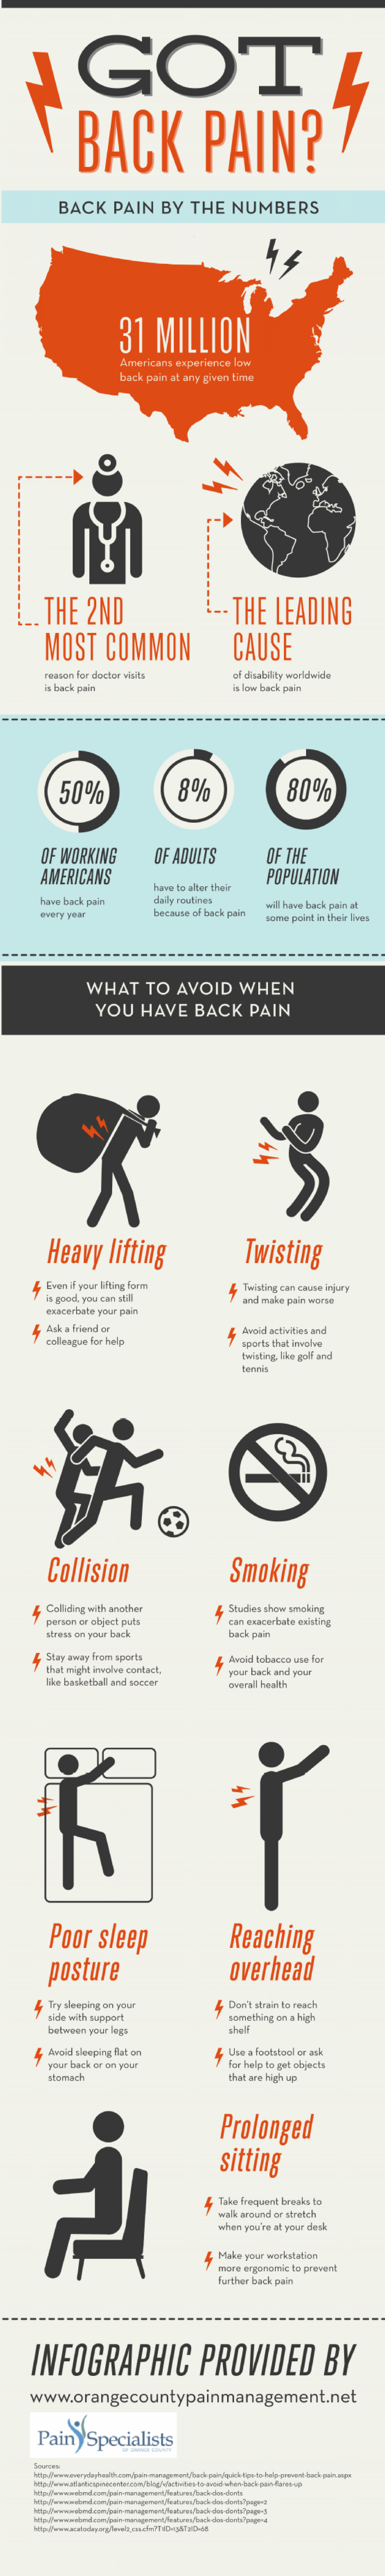 Got Back Pain? Infographic